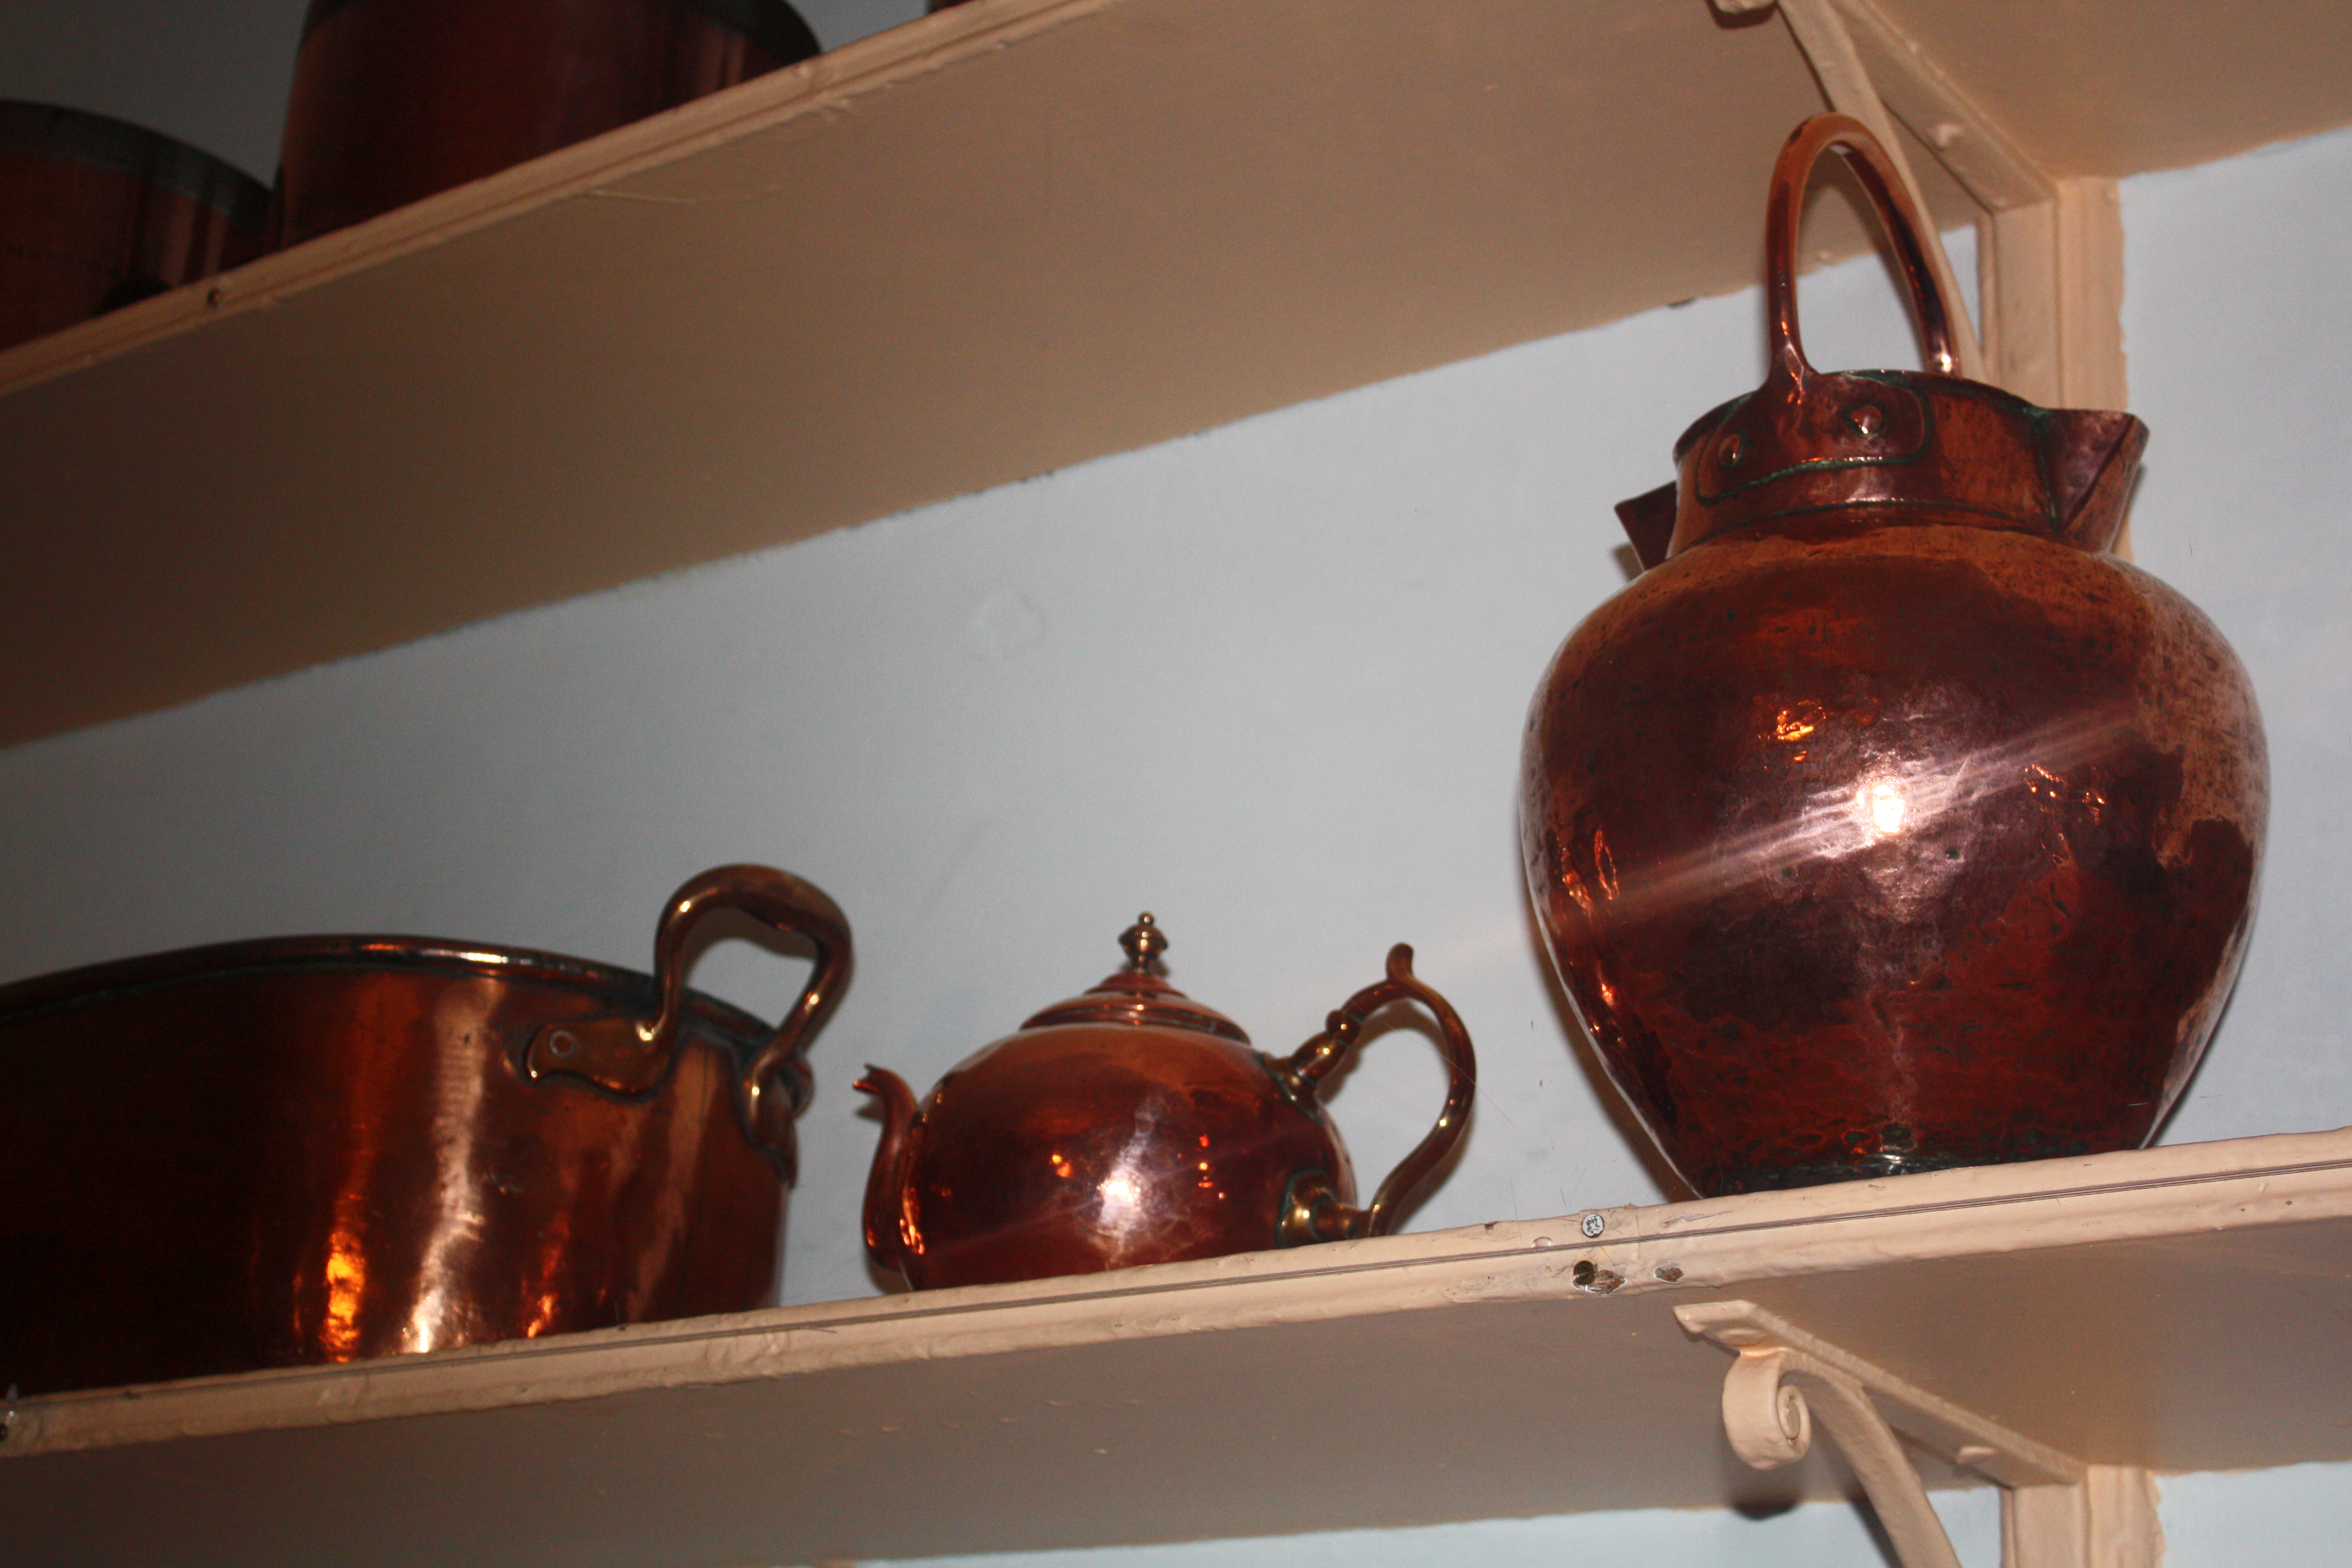 Most kitchen utensils were of copper or wood. China was consider too expensive for such a use and would only be used on serving dishes for the master and guests. Servants ate off pewter plates. With thanks to 'The Georgian House Museum', 7 Great George Street, Bristol, BS1 5RR.